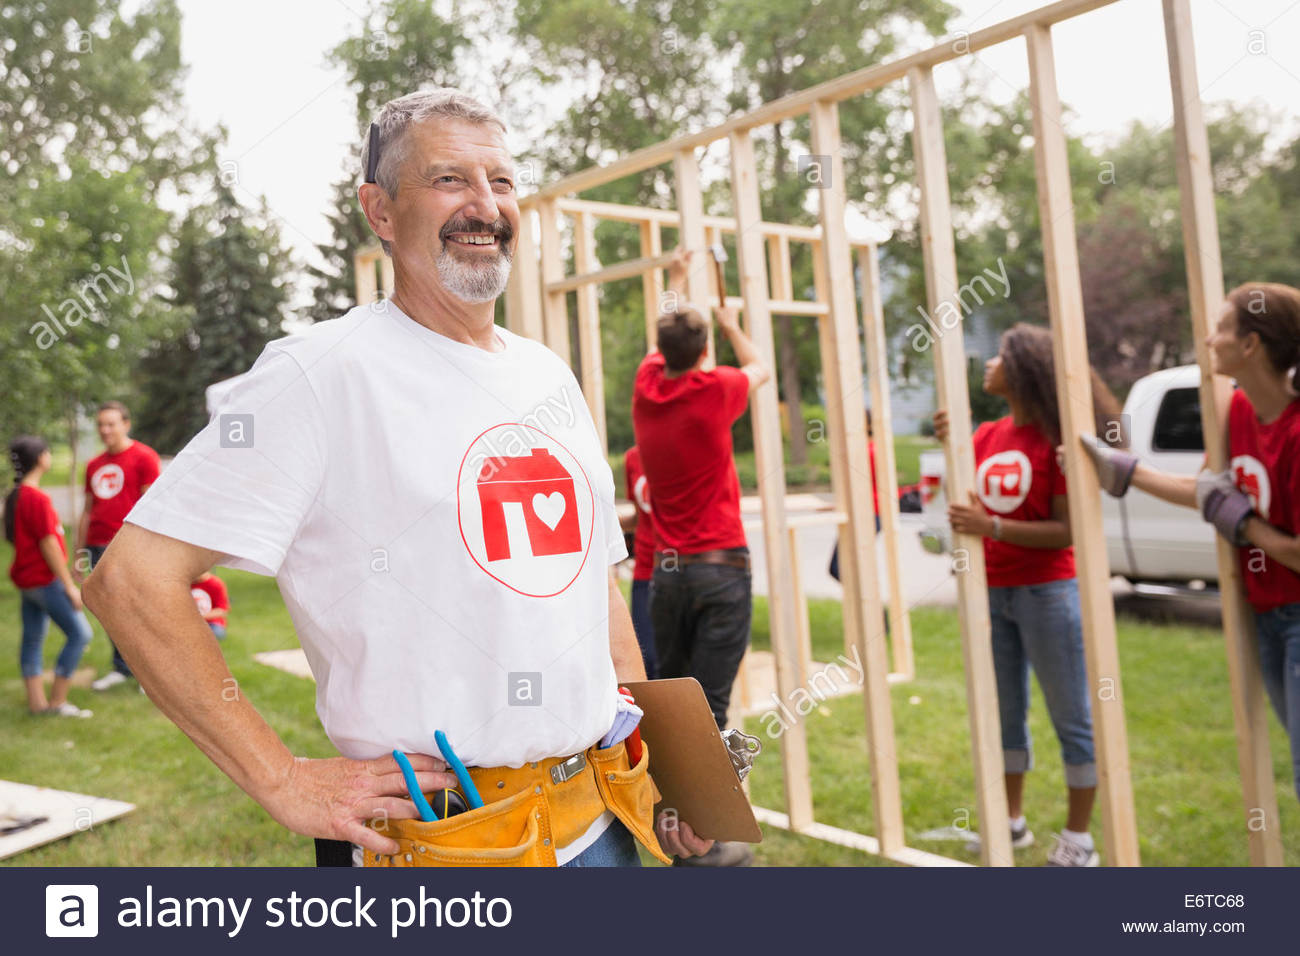 Volunteer with tool belt near construction frame - Stock Image